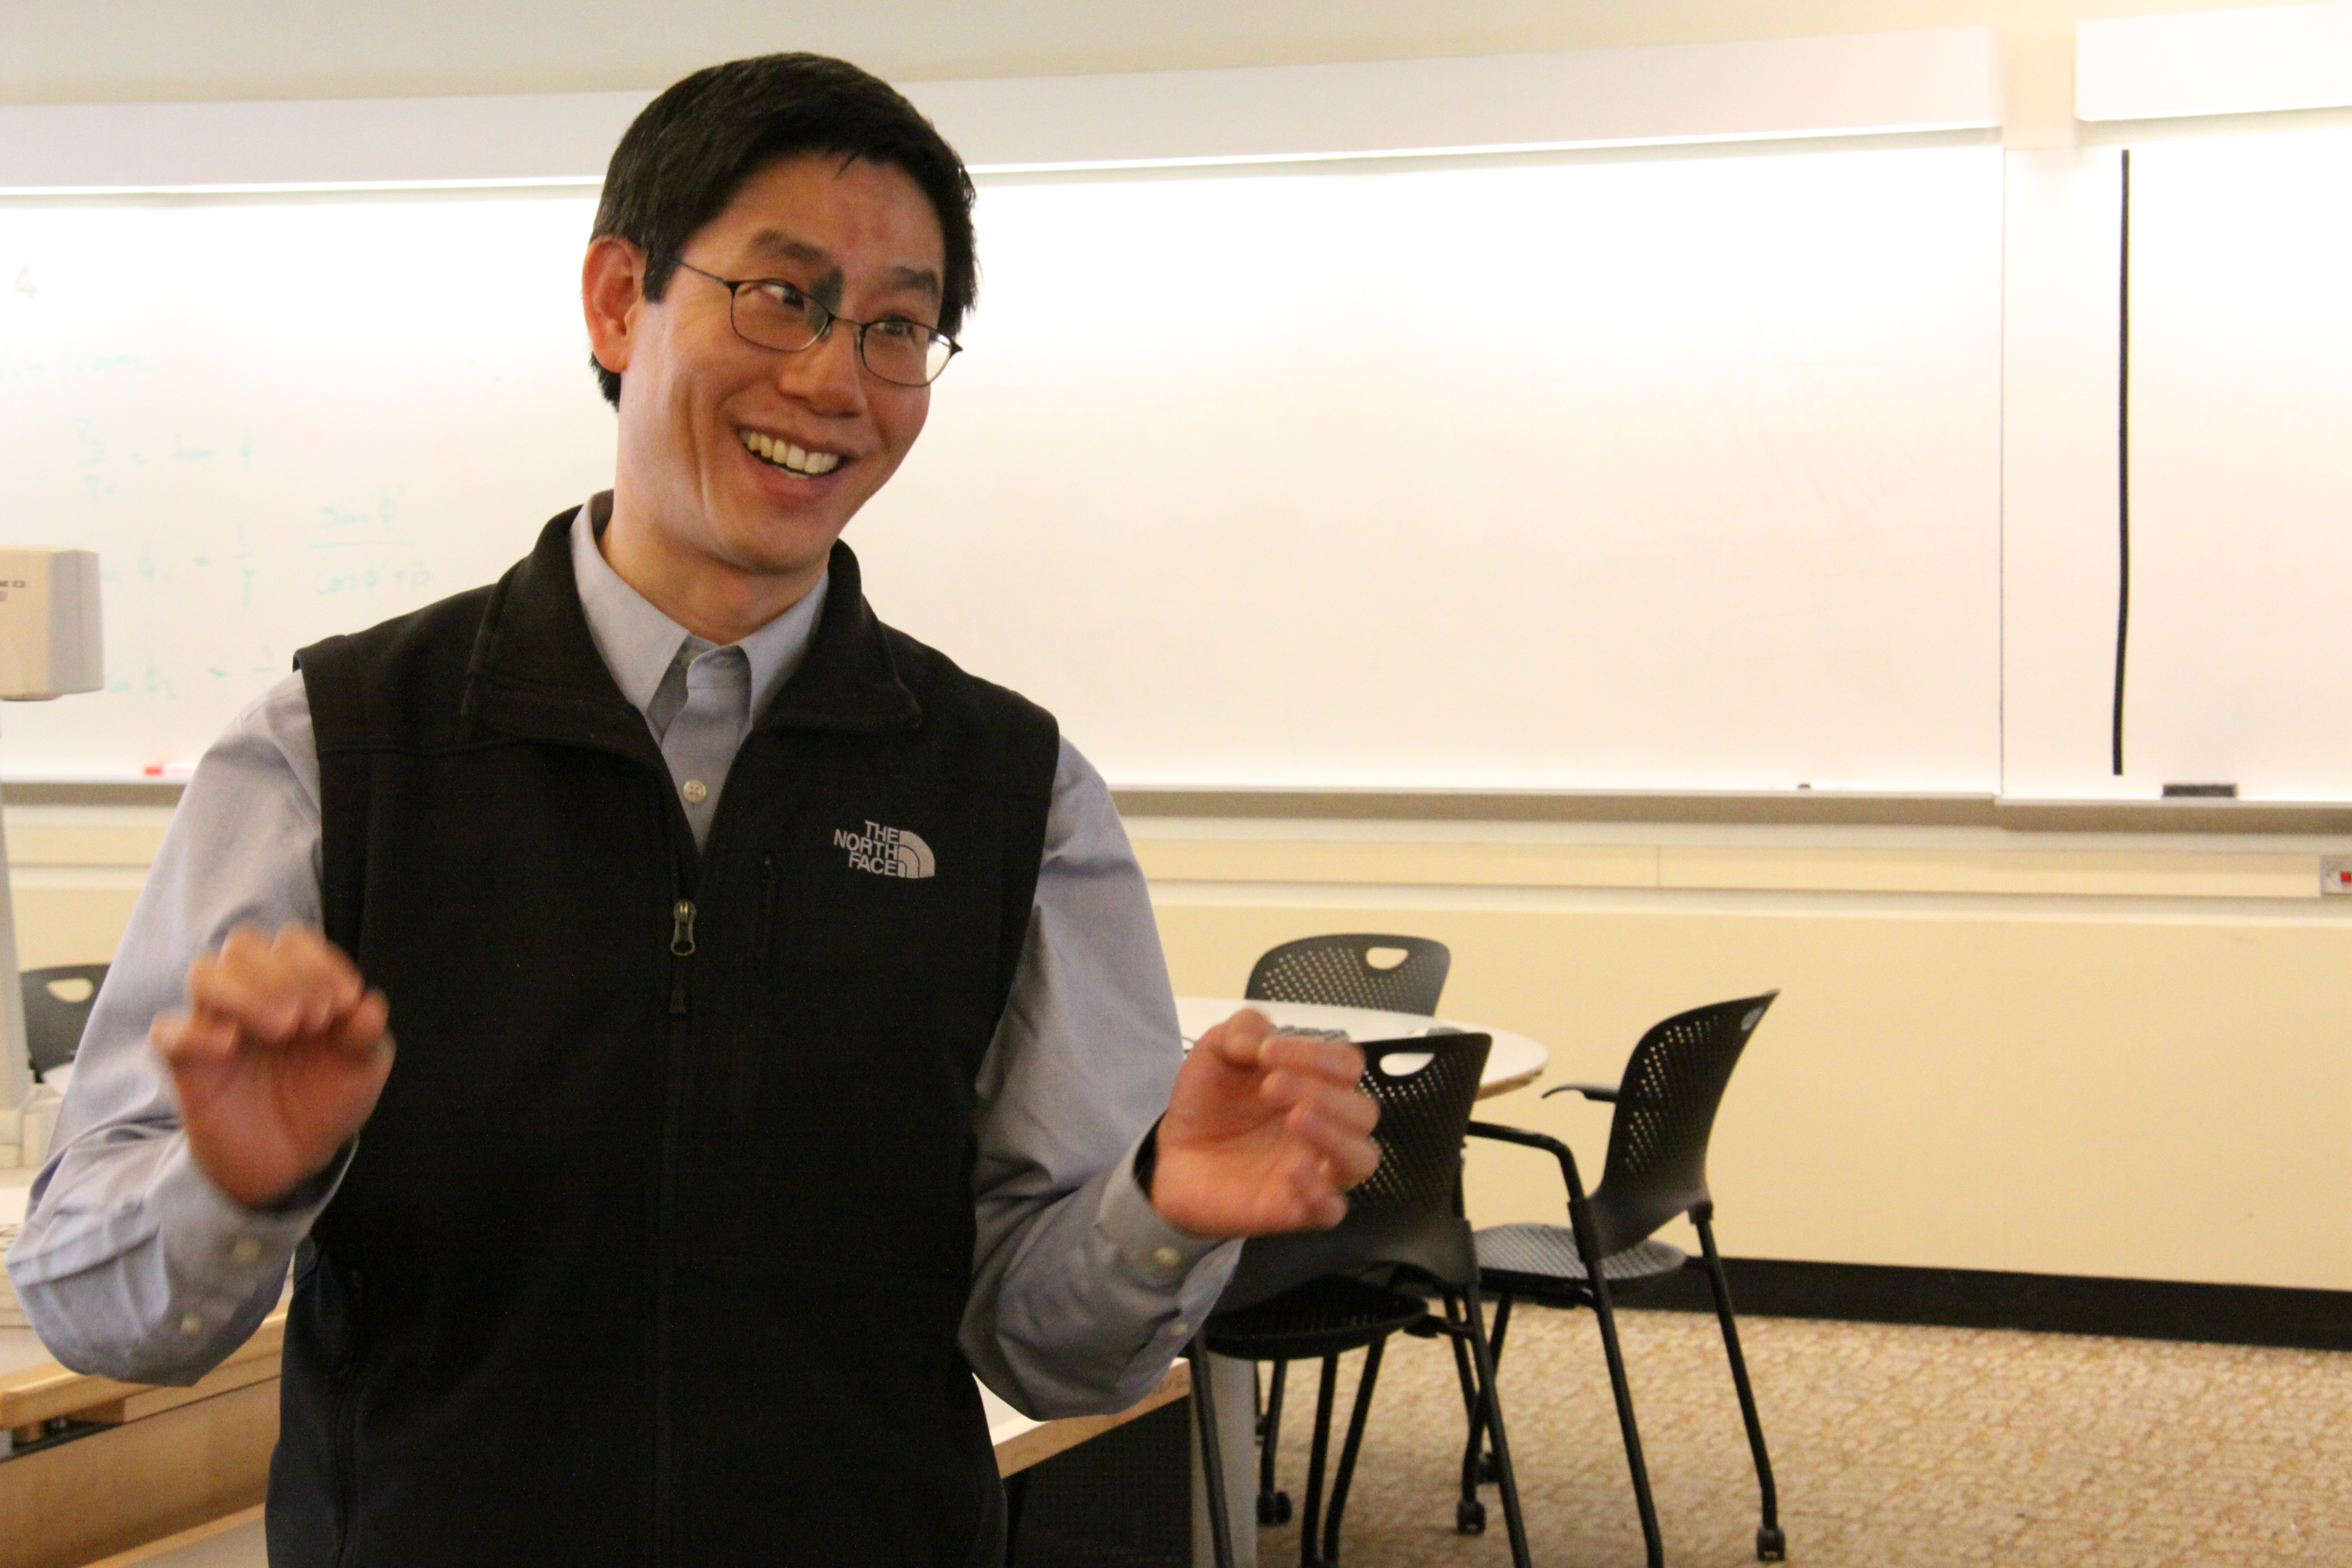 an argument against creative thinking classes Even in a highly-structured classroom environment, you can foster creativity with strategies like possibility thinking, divergent thinking, encouraging student presenting in front of the class few would argue that steve jobs' creativity helped produce the iphone and other innovative apple products.